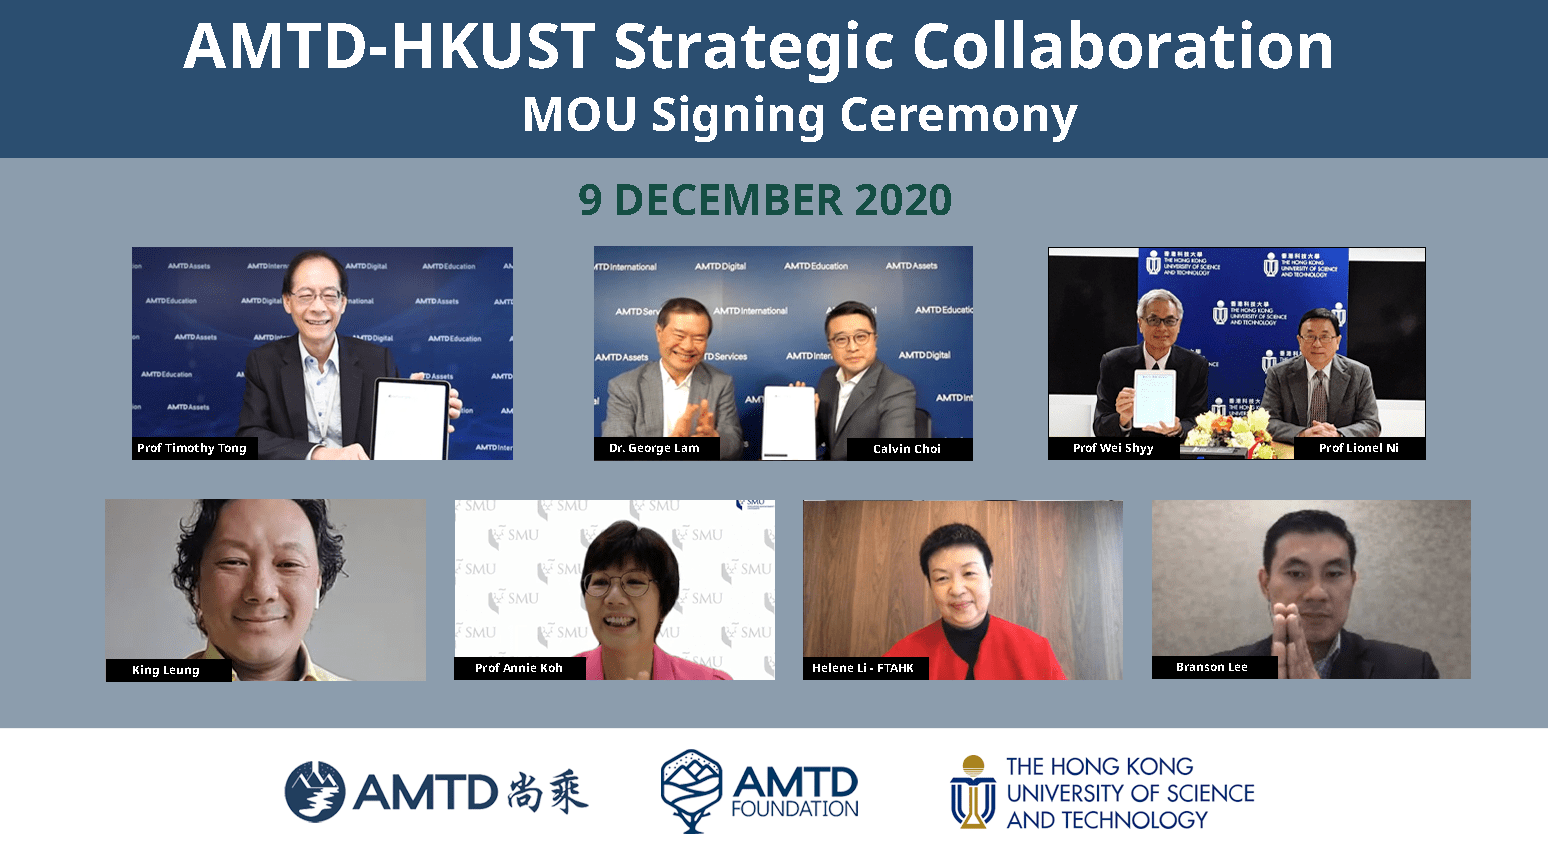 AMTD News | AMTD's strategic collaboration with HKUST is sealed to focus on grooming the next generation of digital and innovation leaders to connect the Greater Bay Area with South East Asia